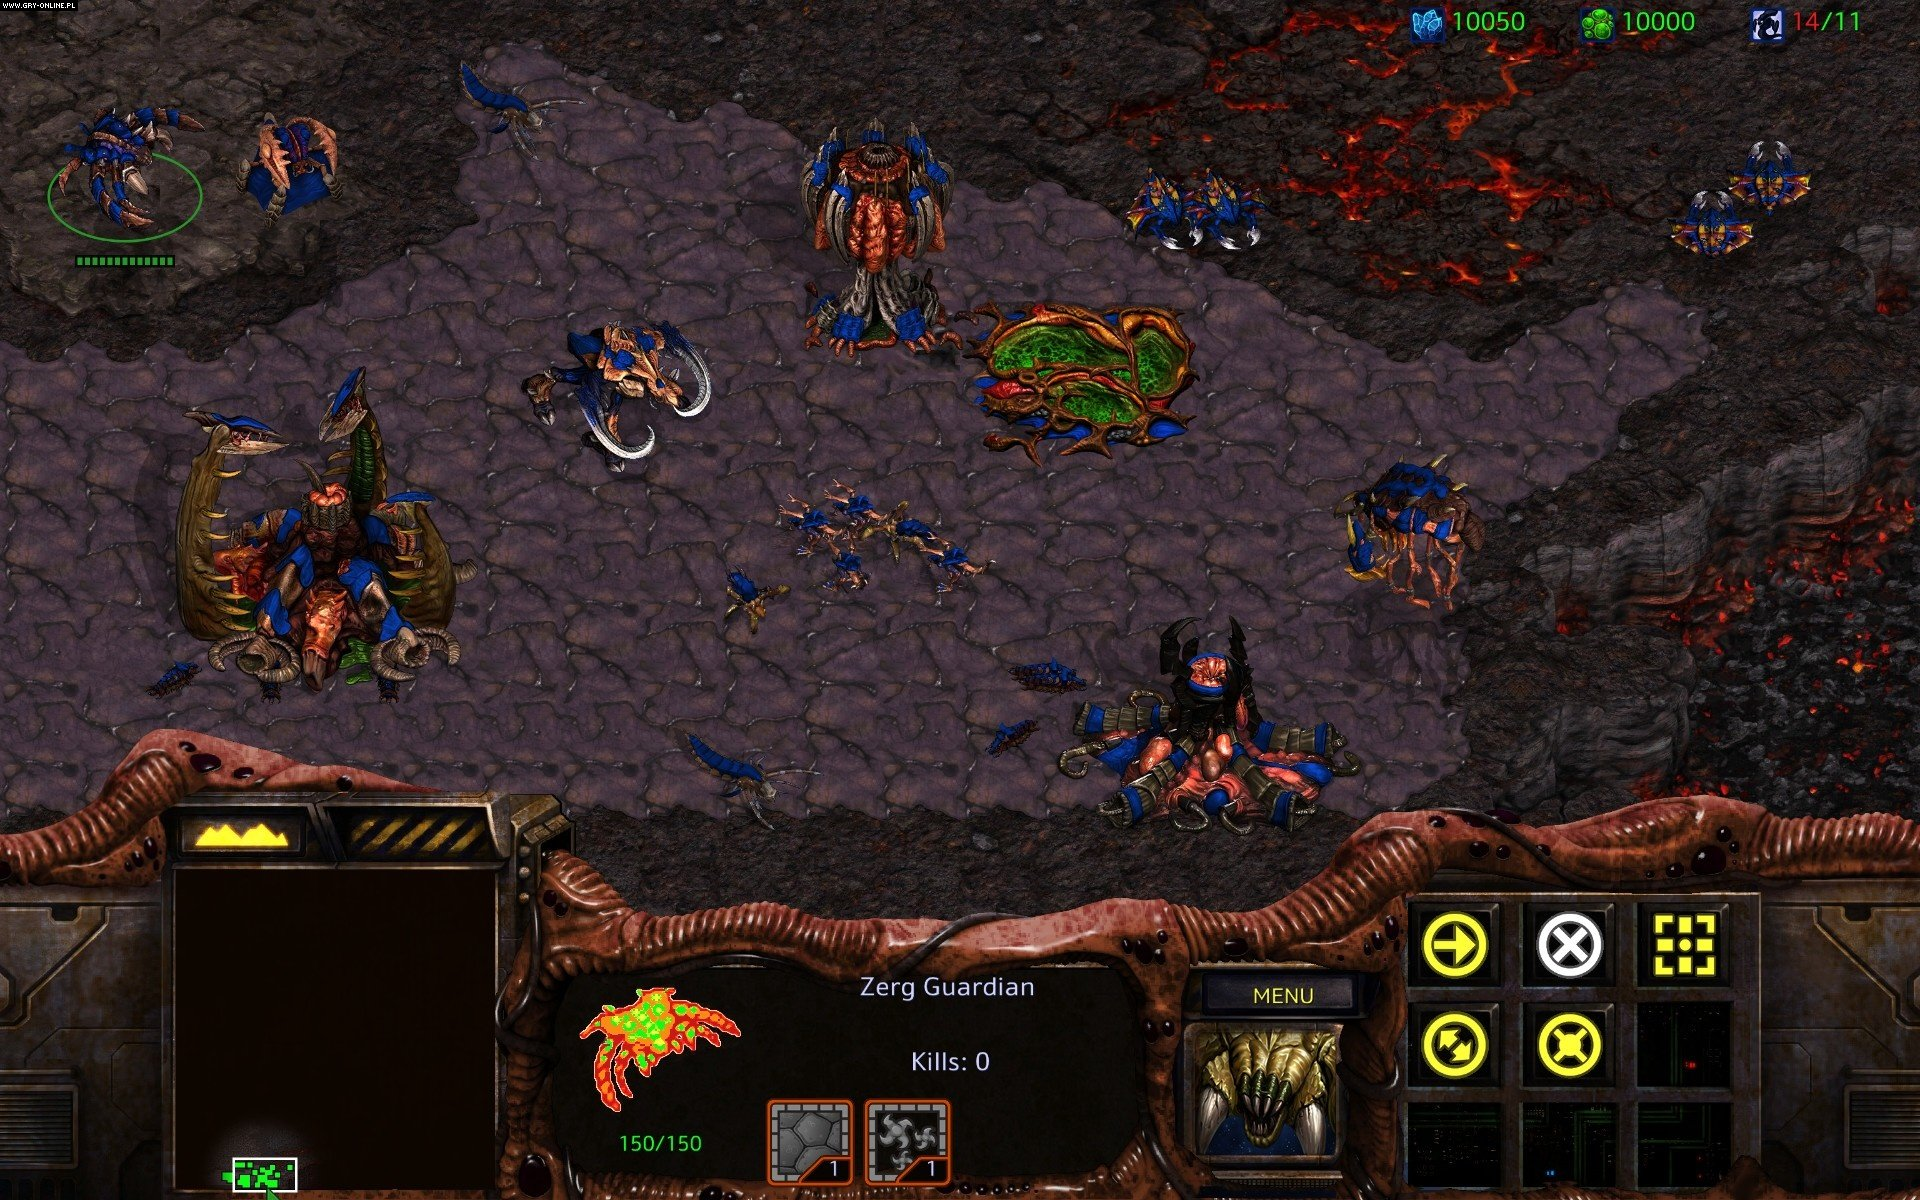 StarCraft: Remastered PC Games Image 15/15, Blizzard Entertainment